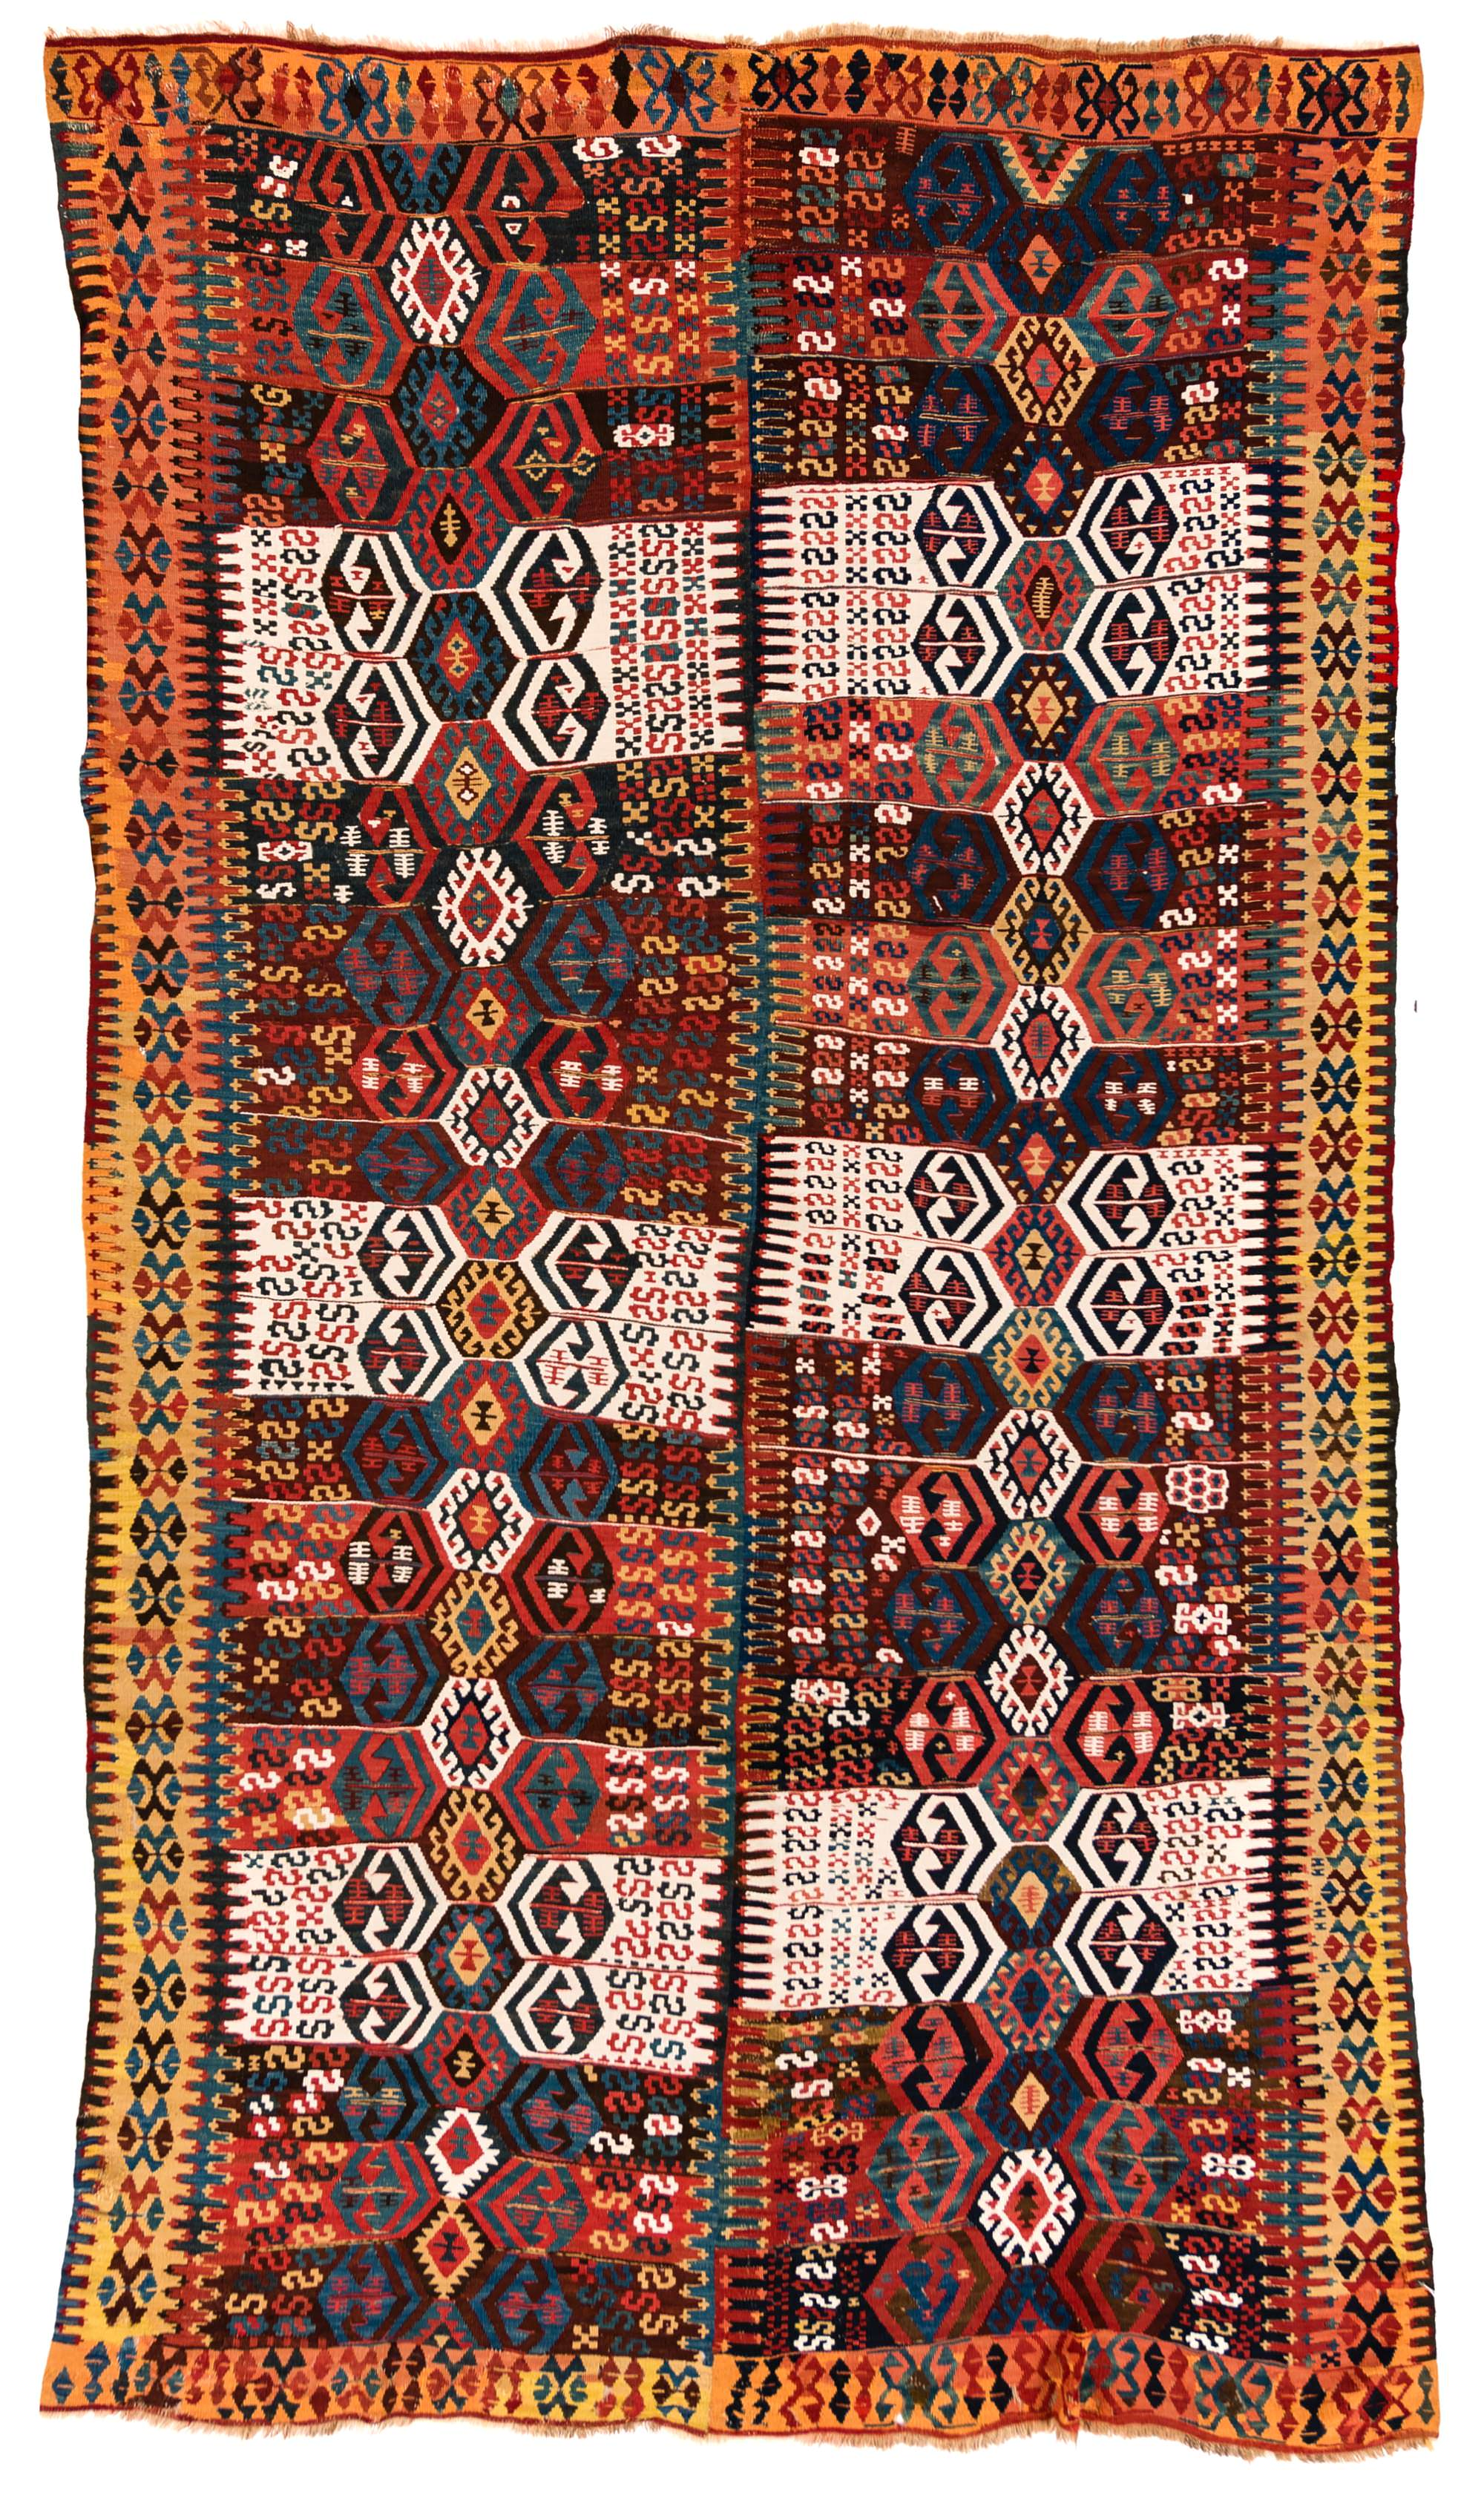 turkish trendy rug innovative rugs vintage kilim of unique hand uk pirot design woven modern wool tribal luxury